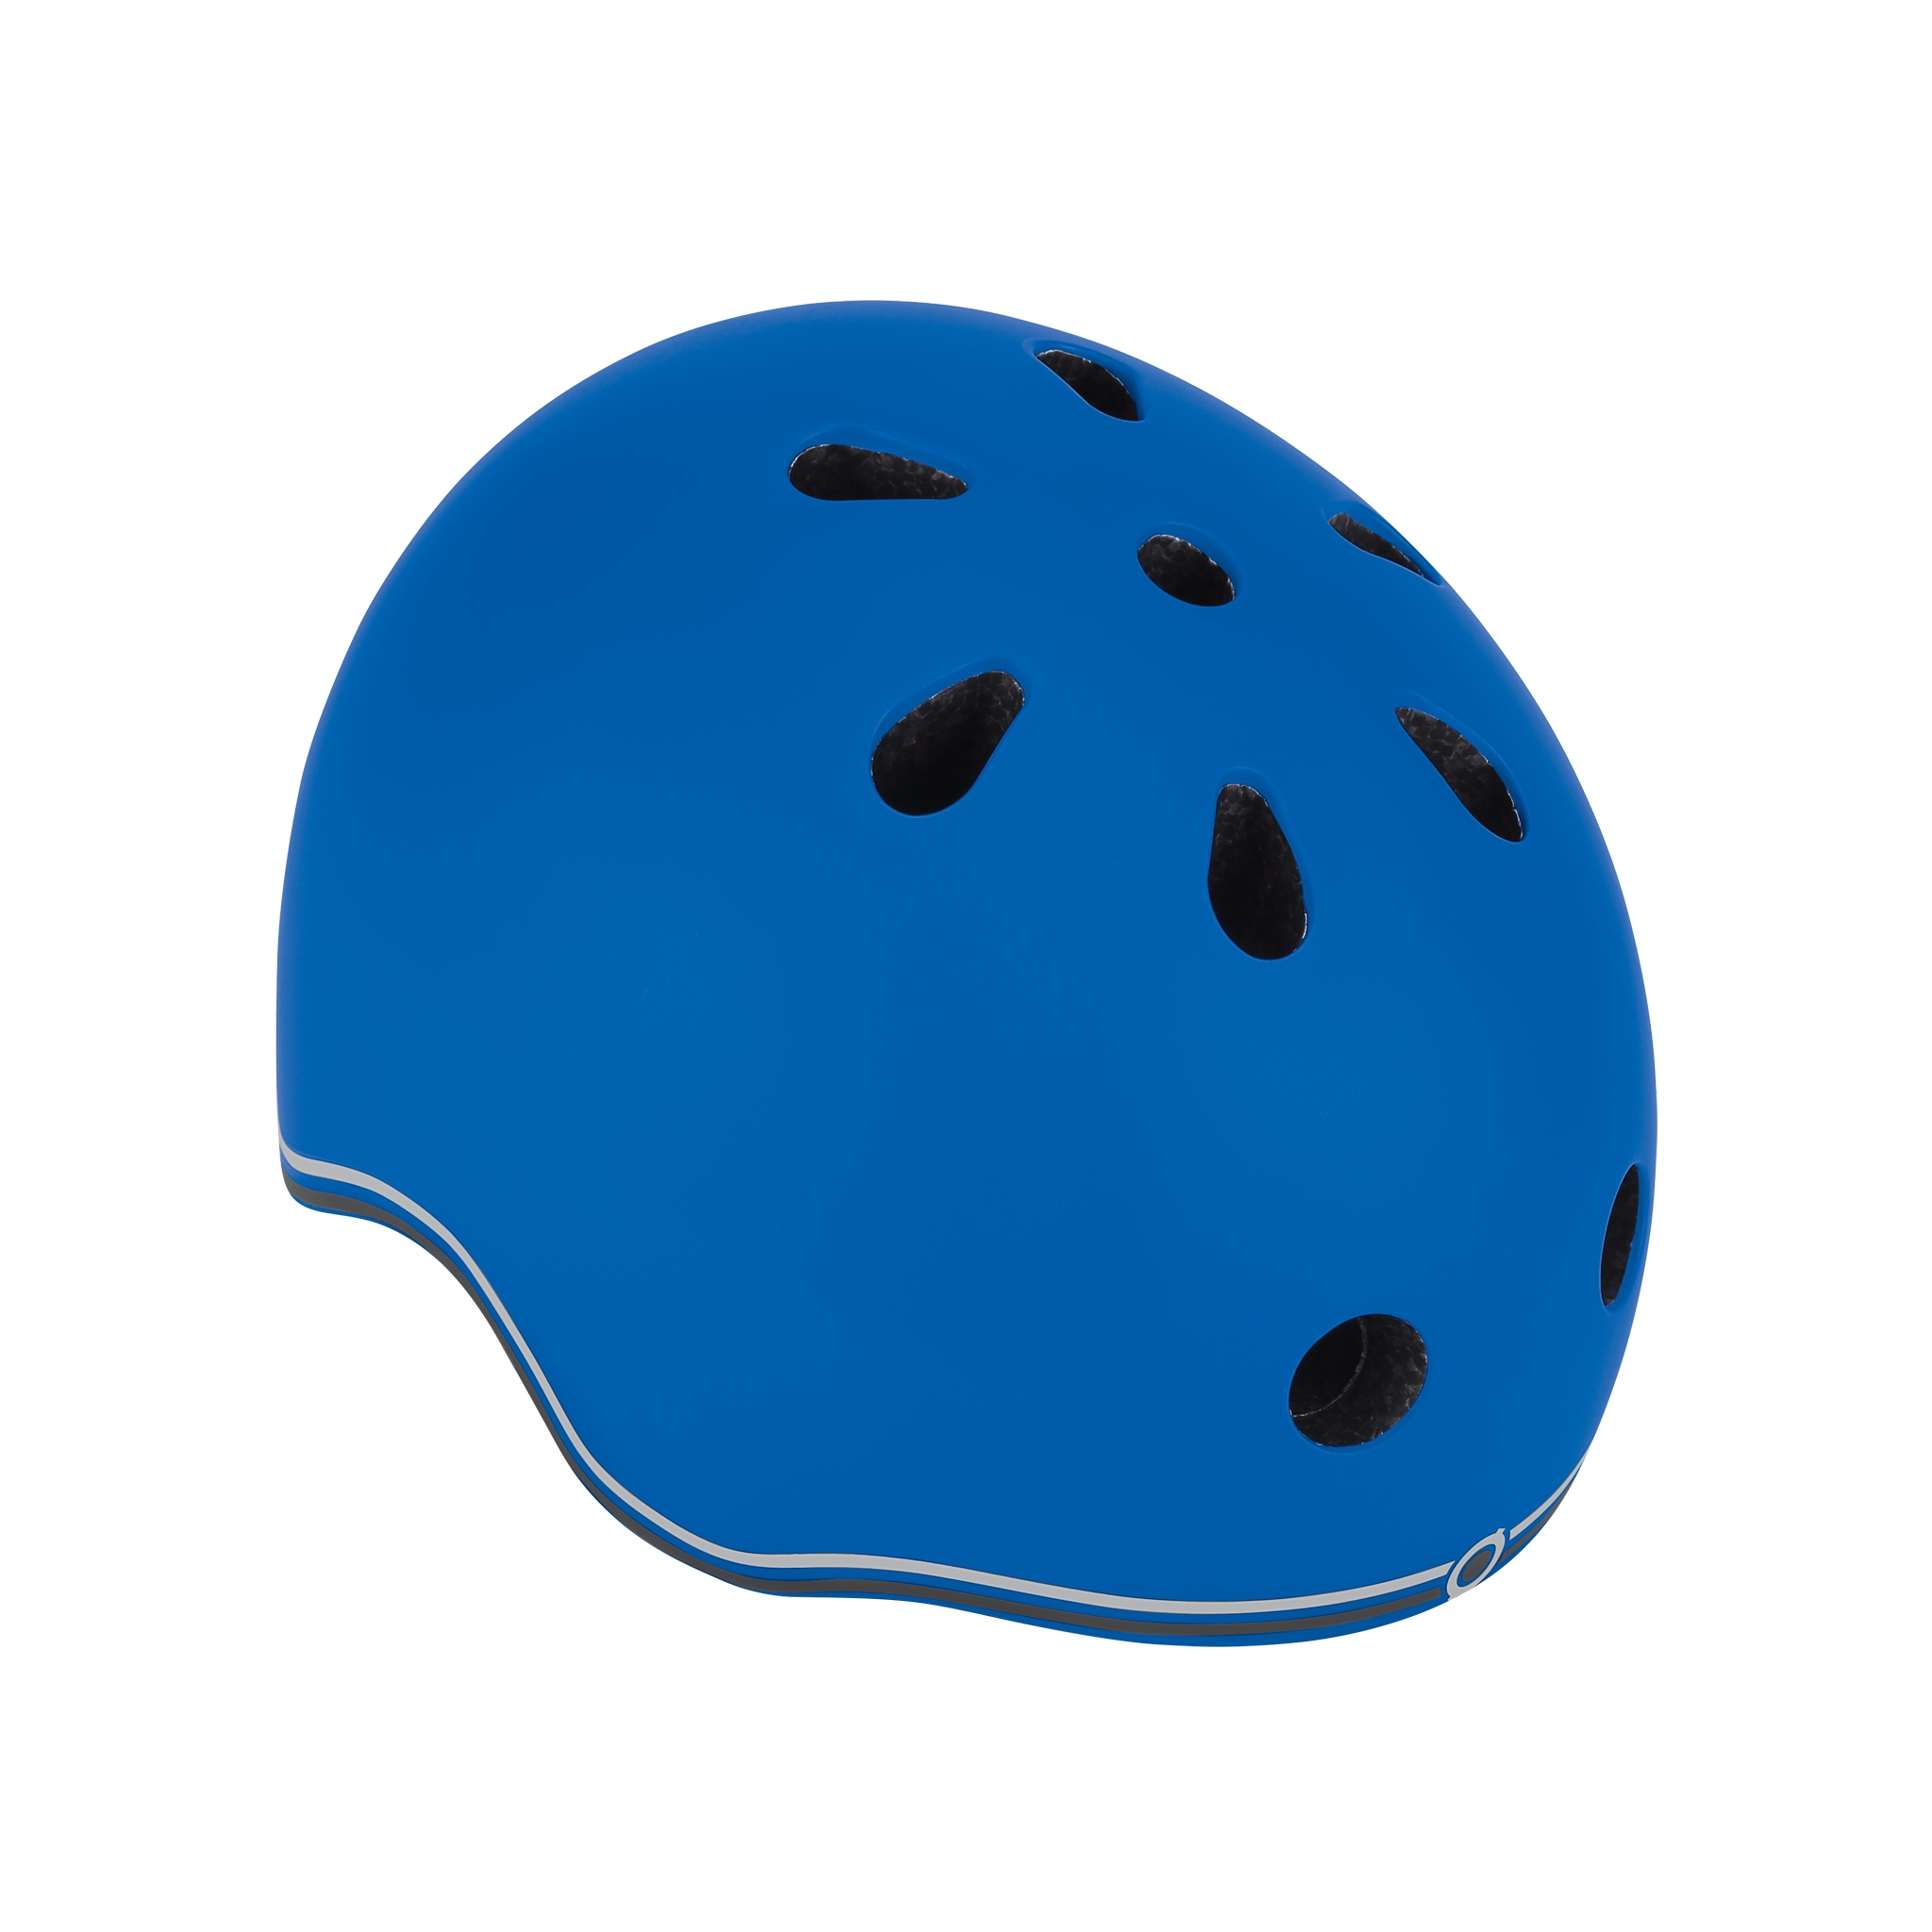 kids-helmets-scooter-helmets-in-mold-polycarbonate-outer-shell-navy-blue